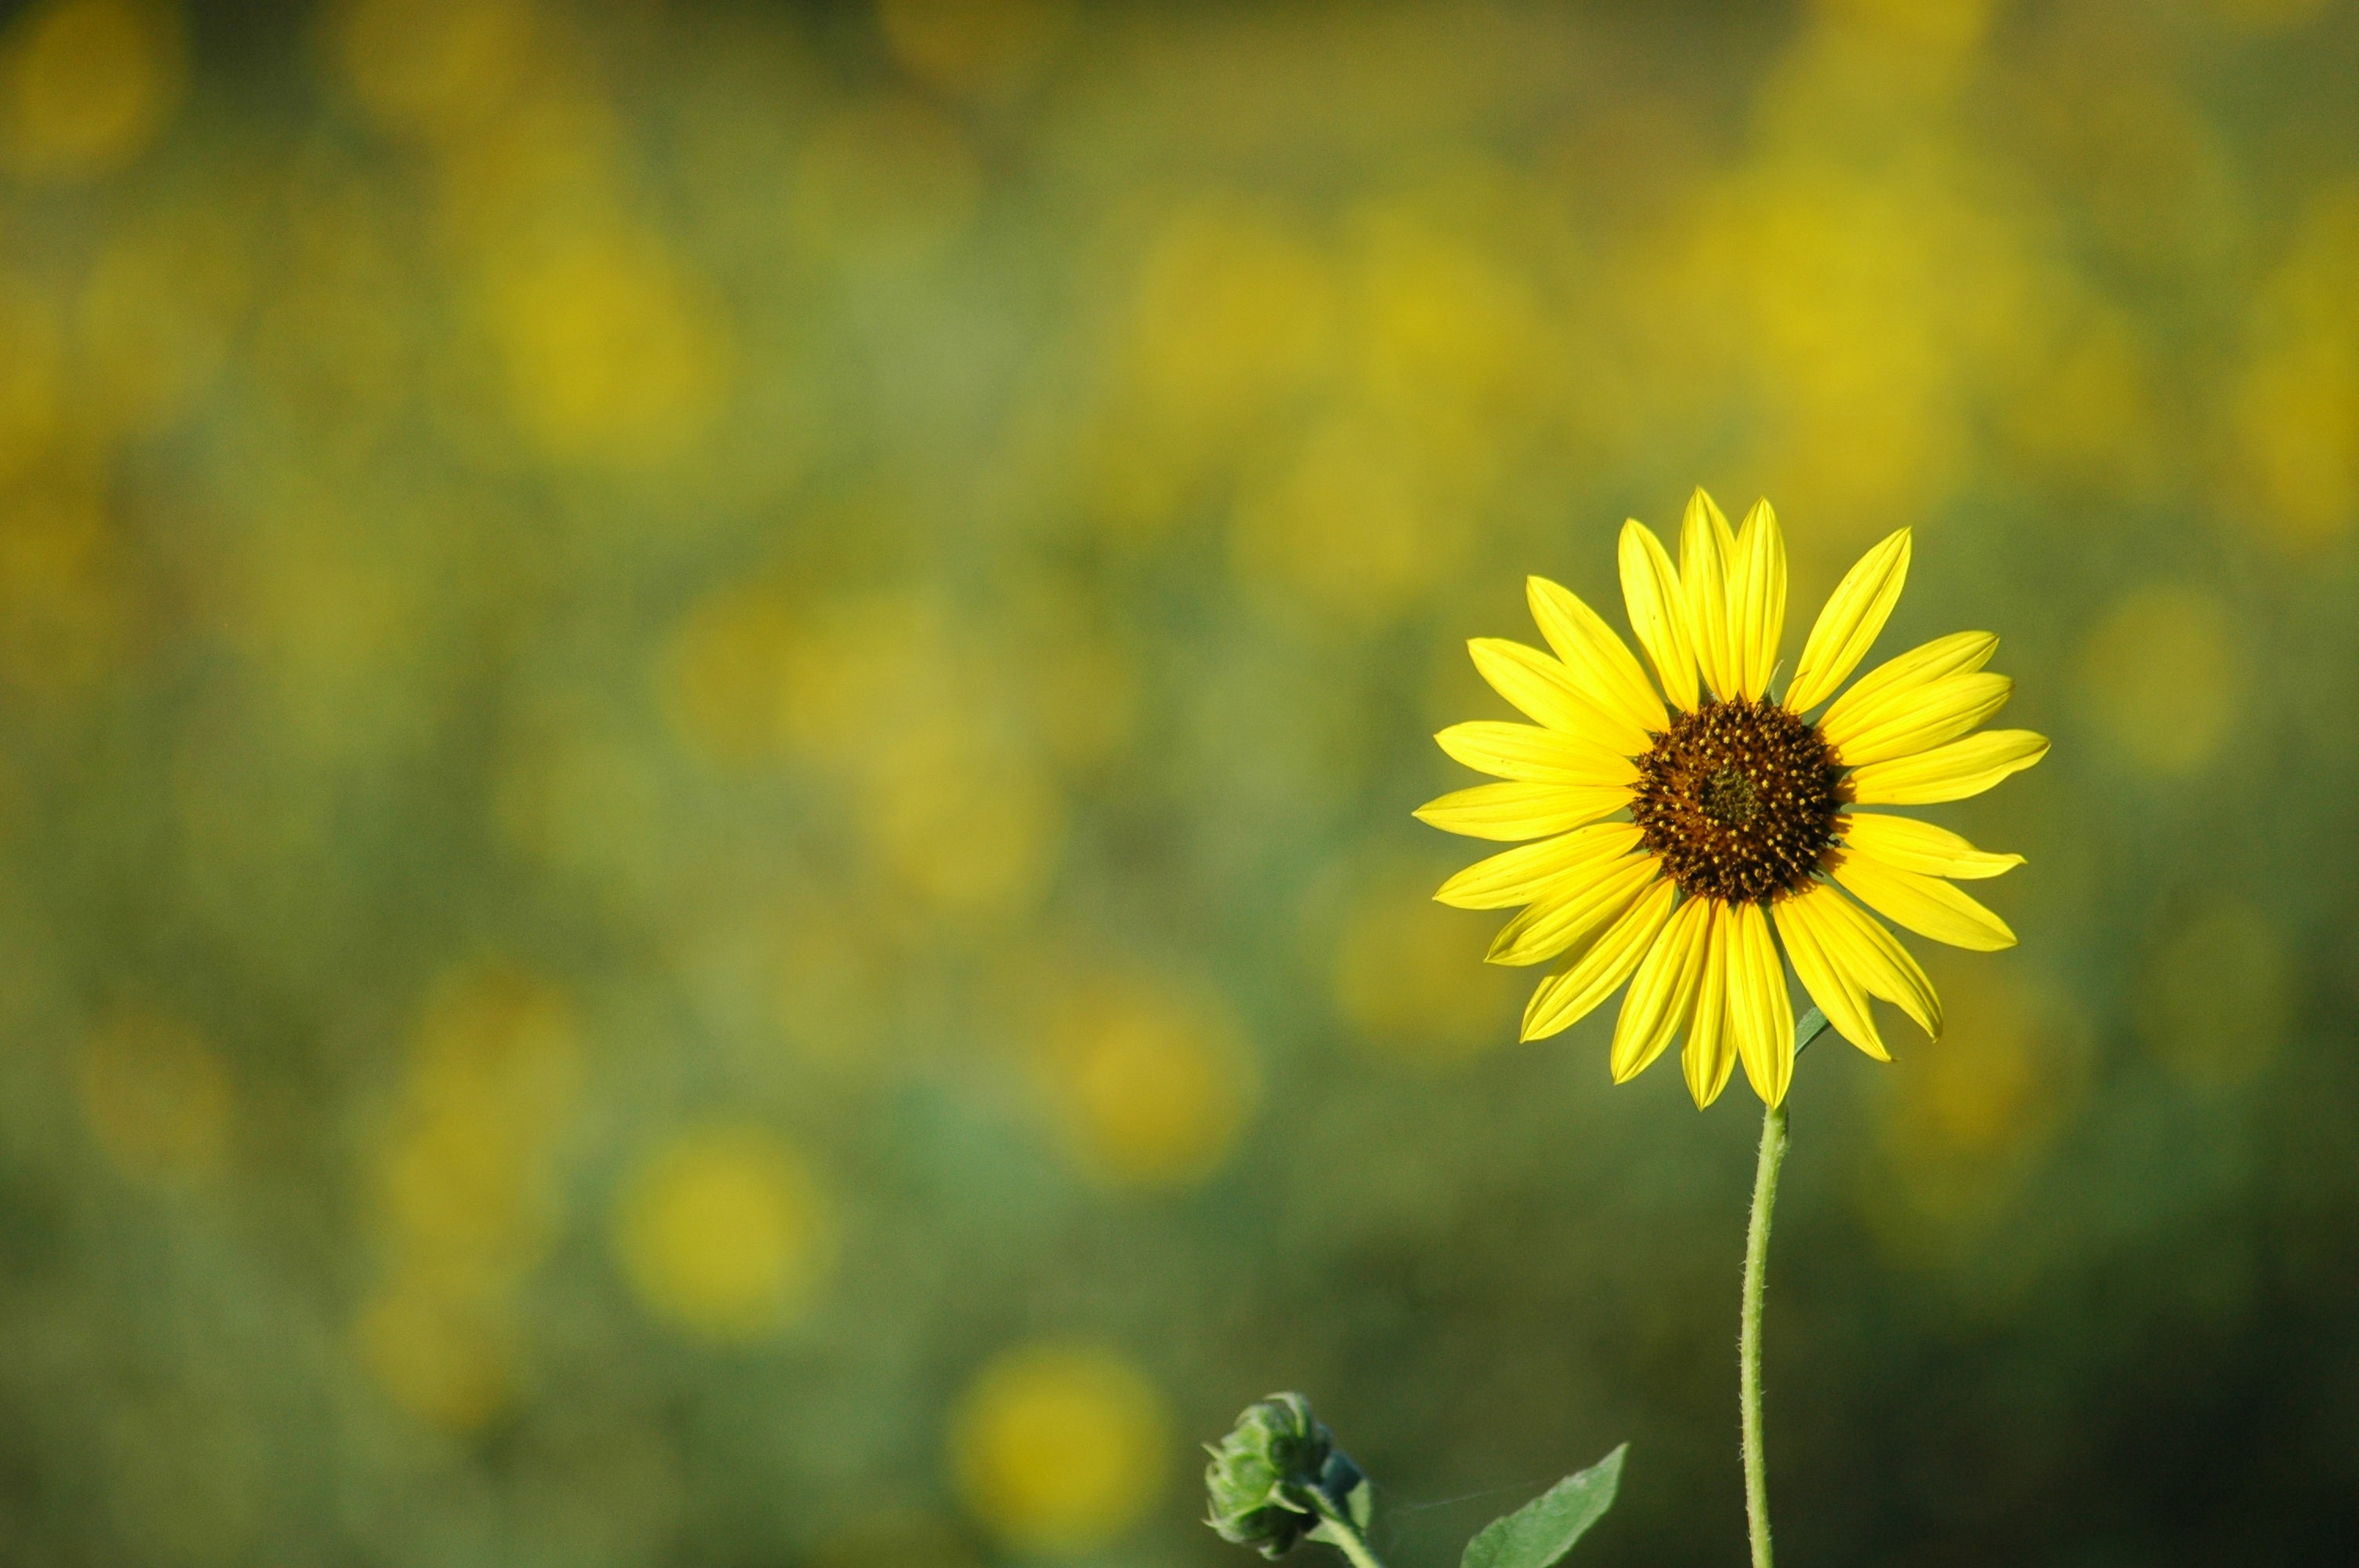 Yellow flower with a shallow depth of field